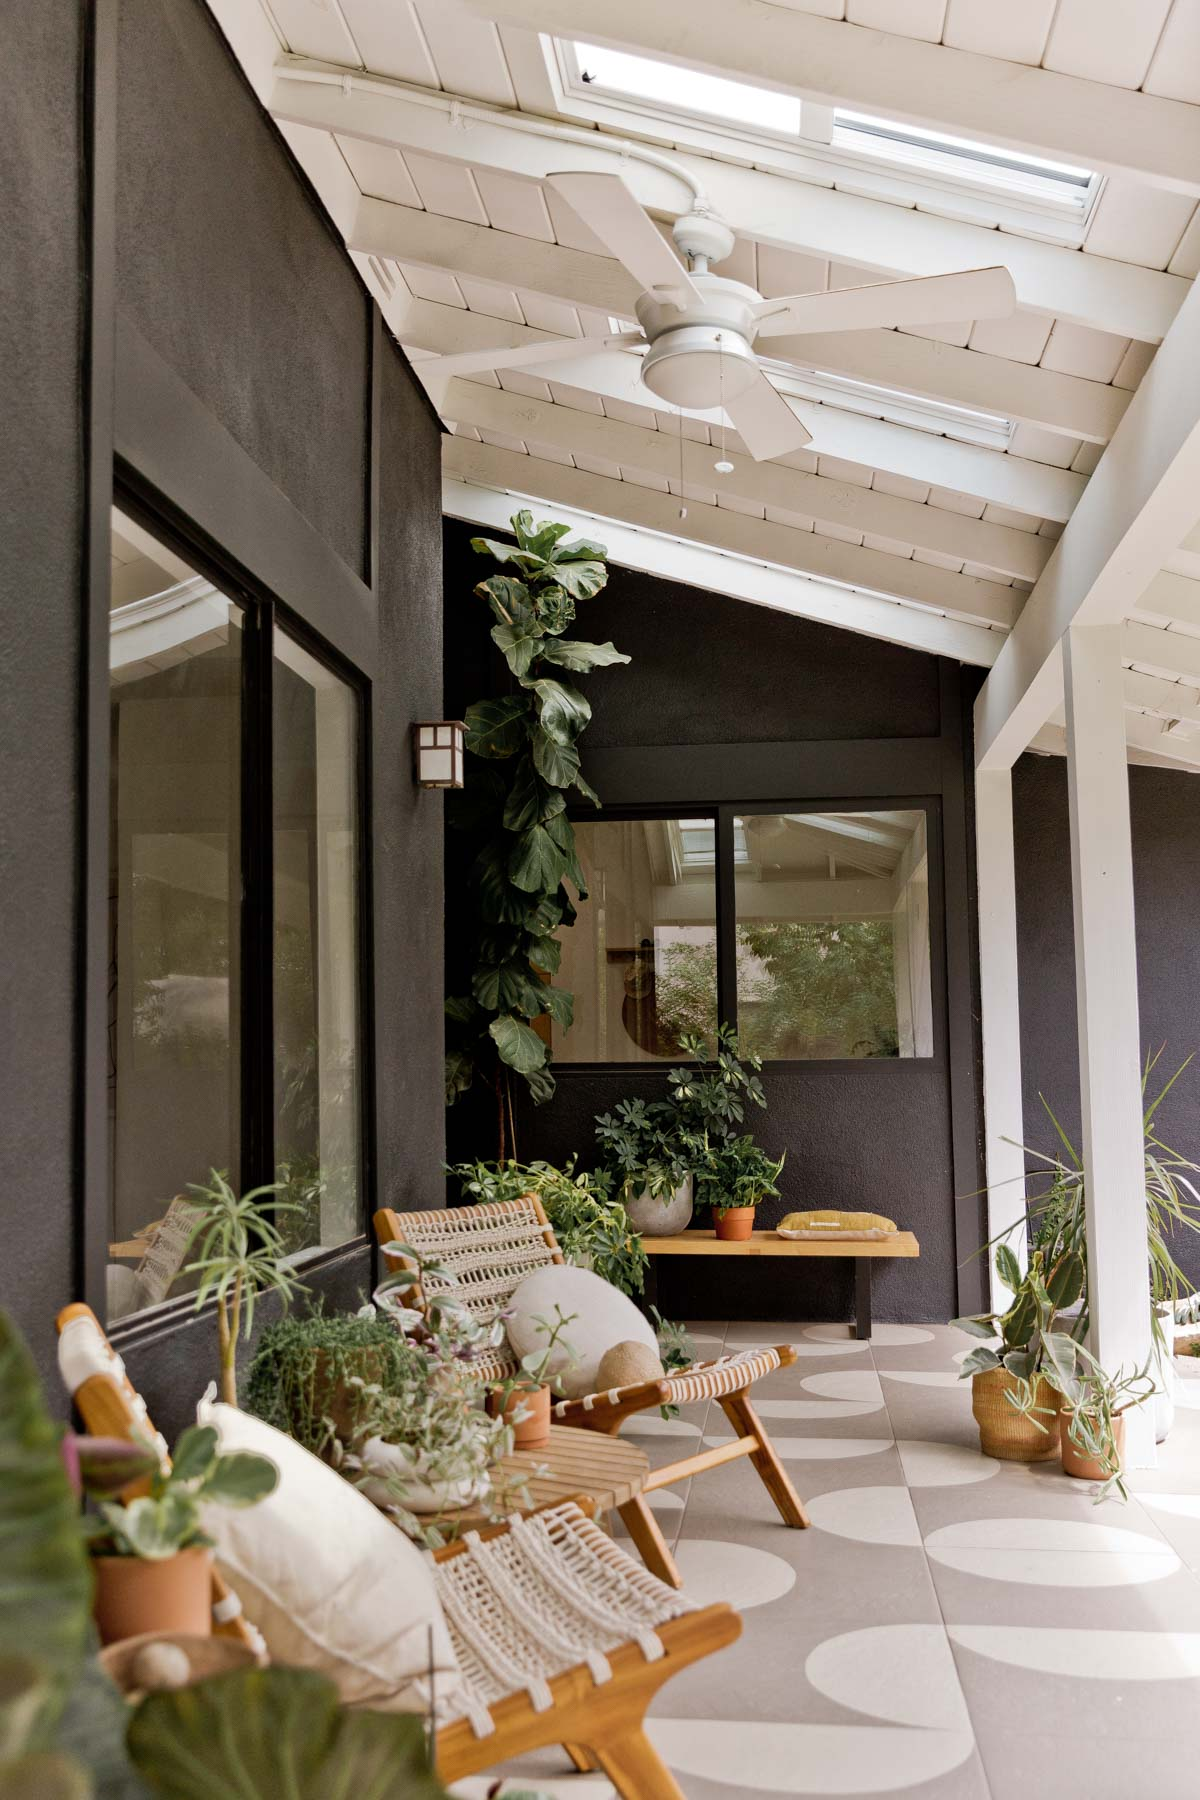 Modern front porch with painted tile floors and black exterior pant.